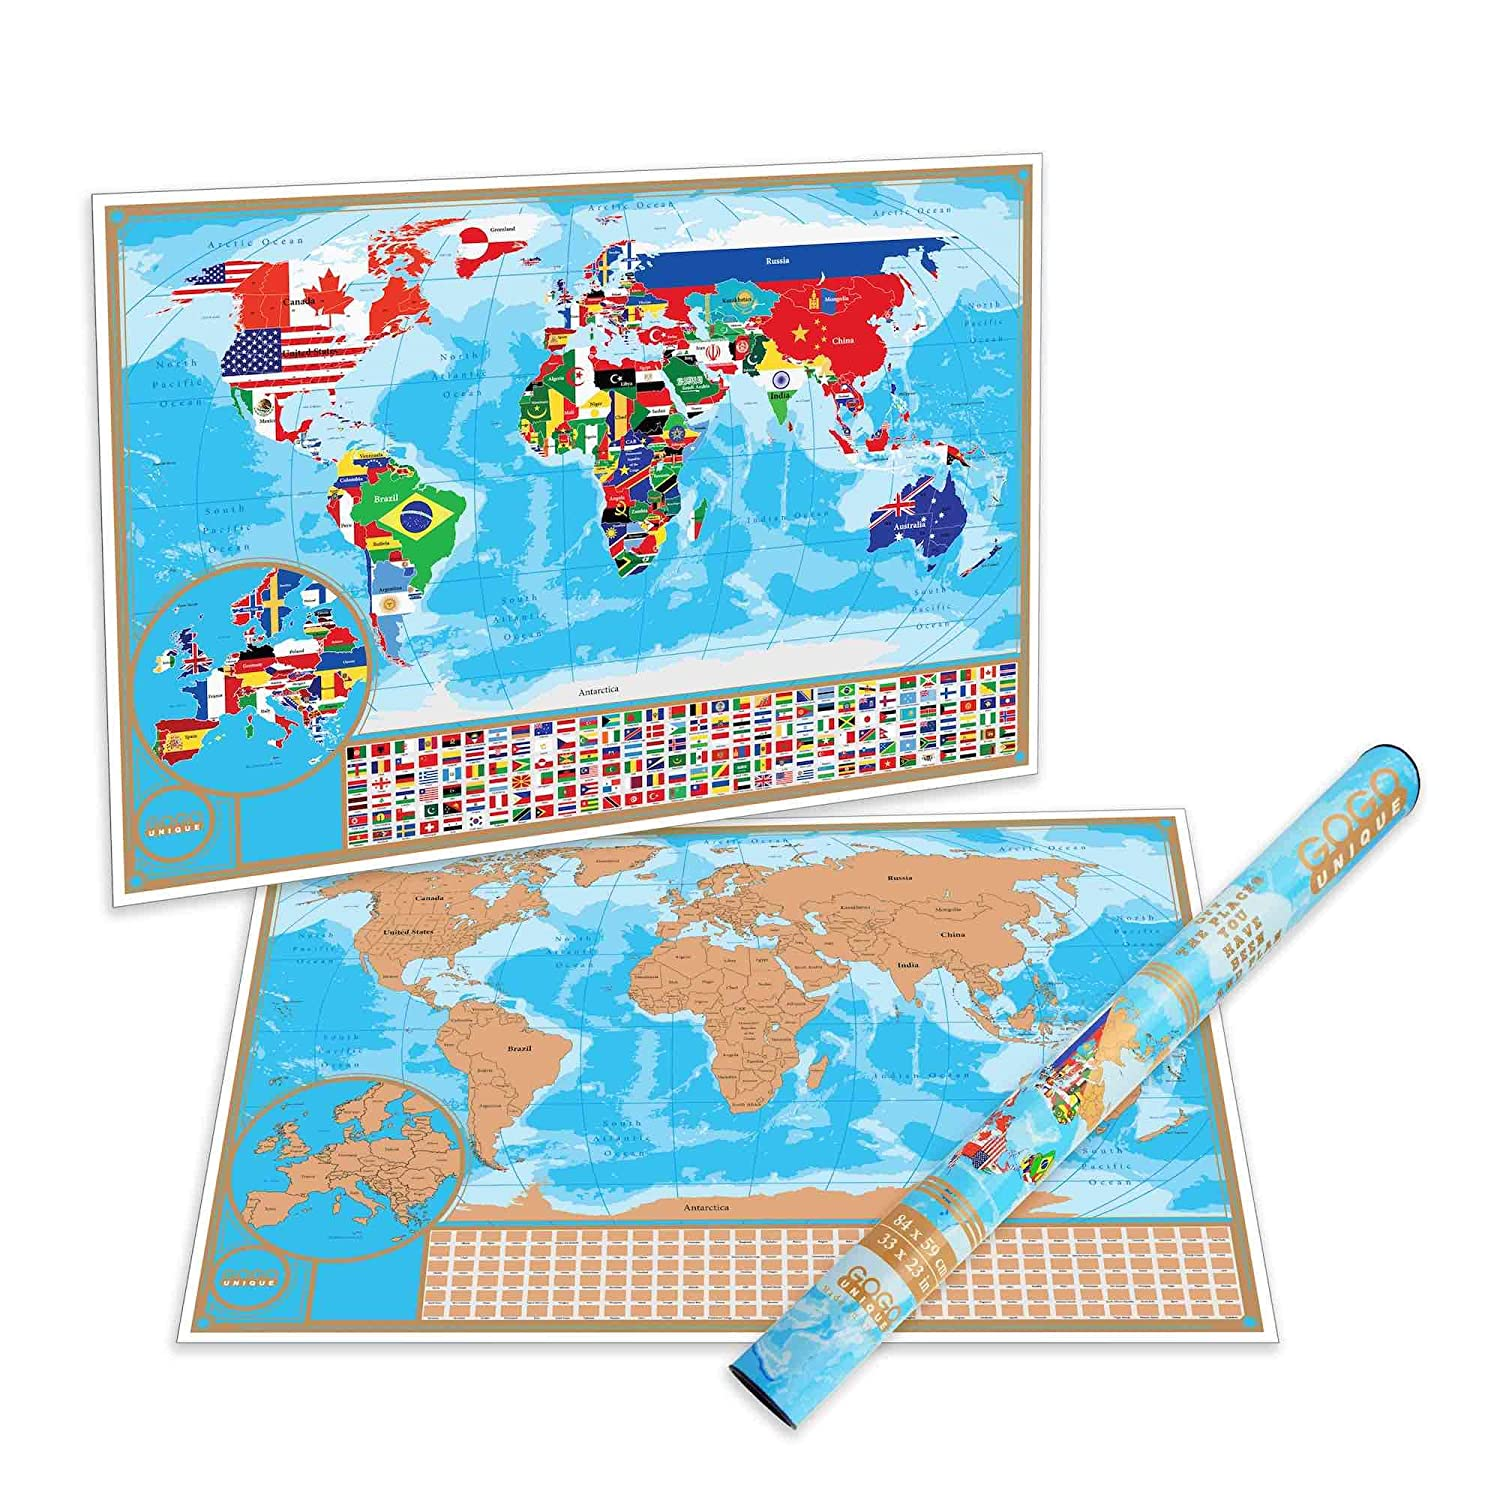 World Map United States Of America.Scratch Off Map Of The World With Flags Detailed Us States And Europe Map World Scratch Off Poster Is A Perfect Present For Travelers Premium